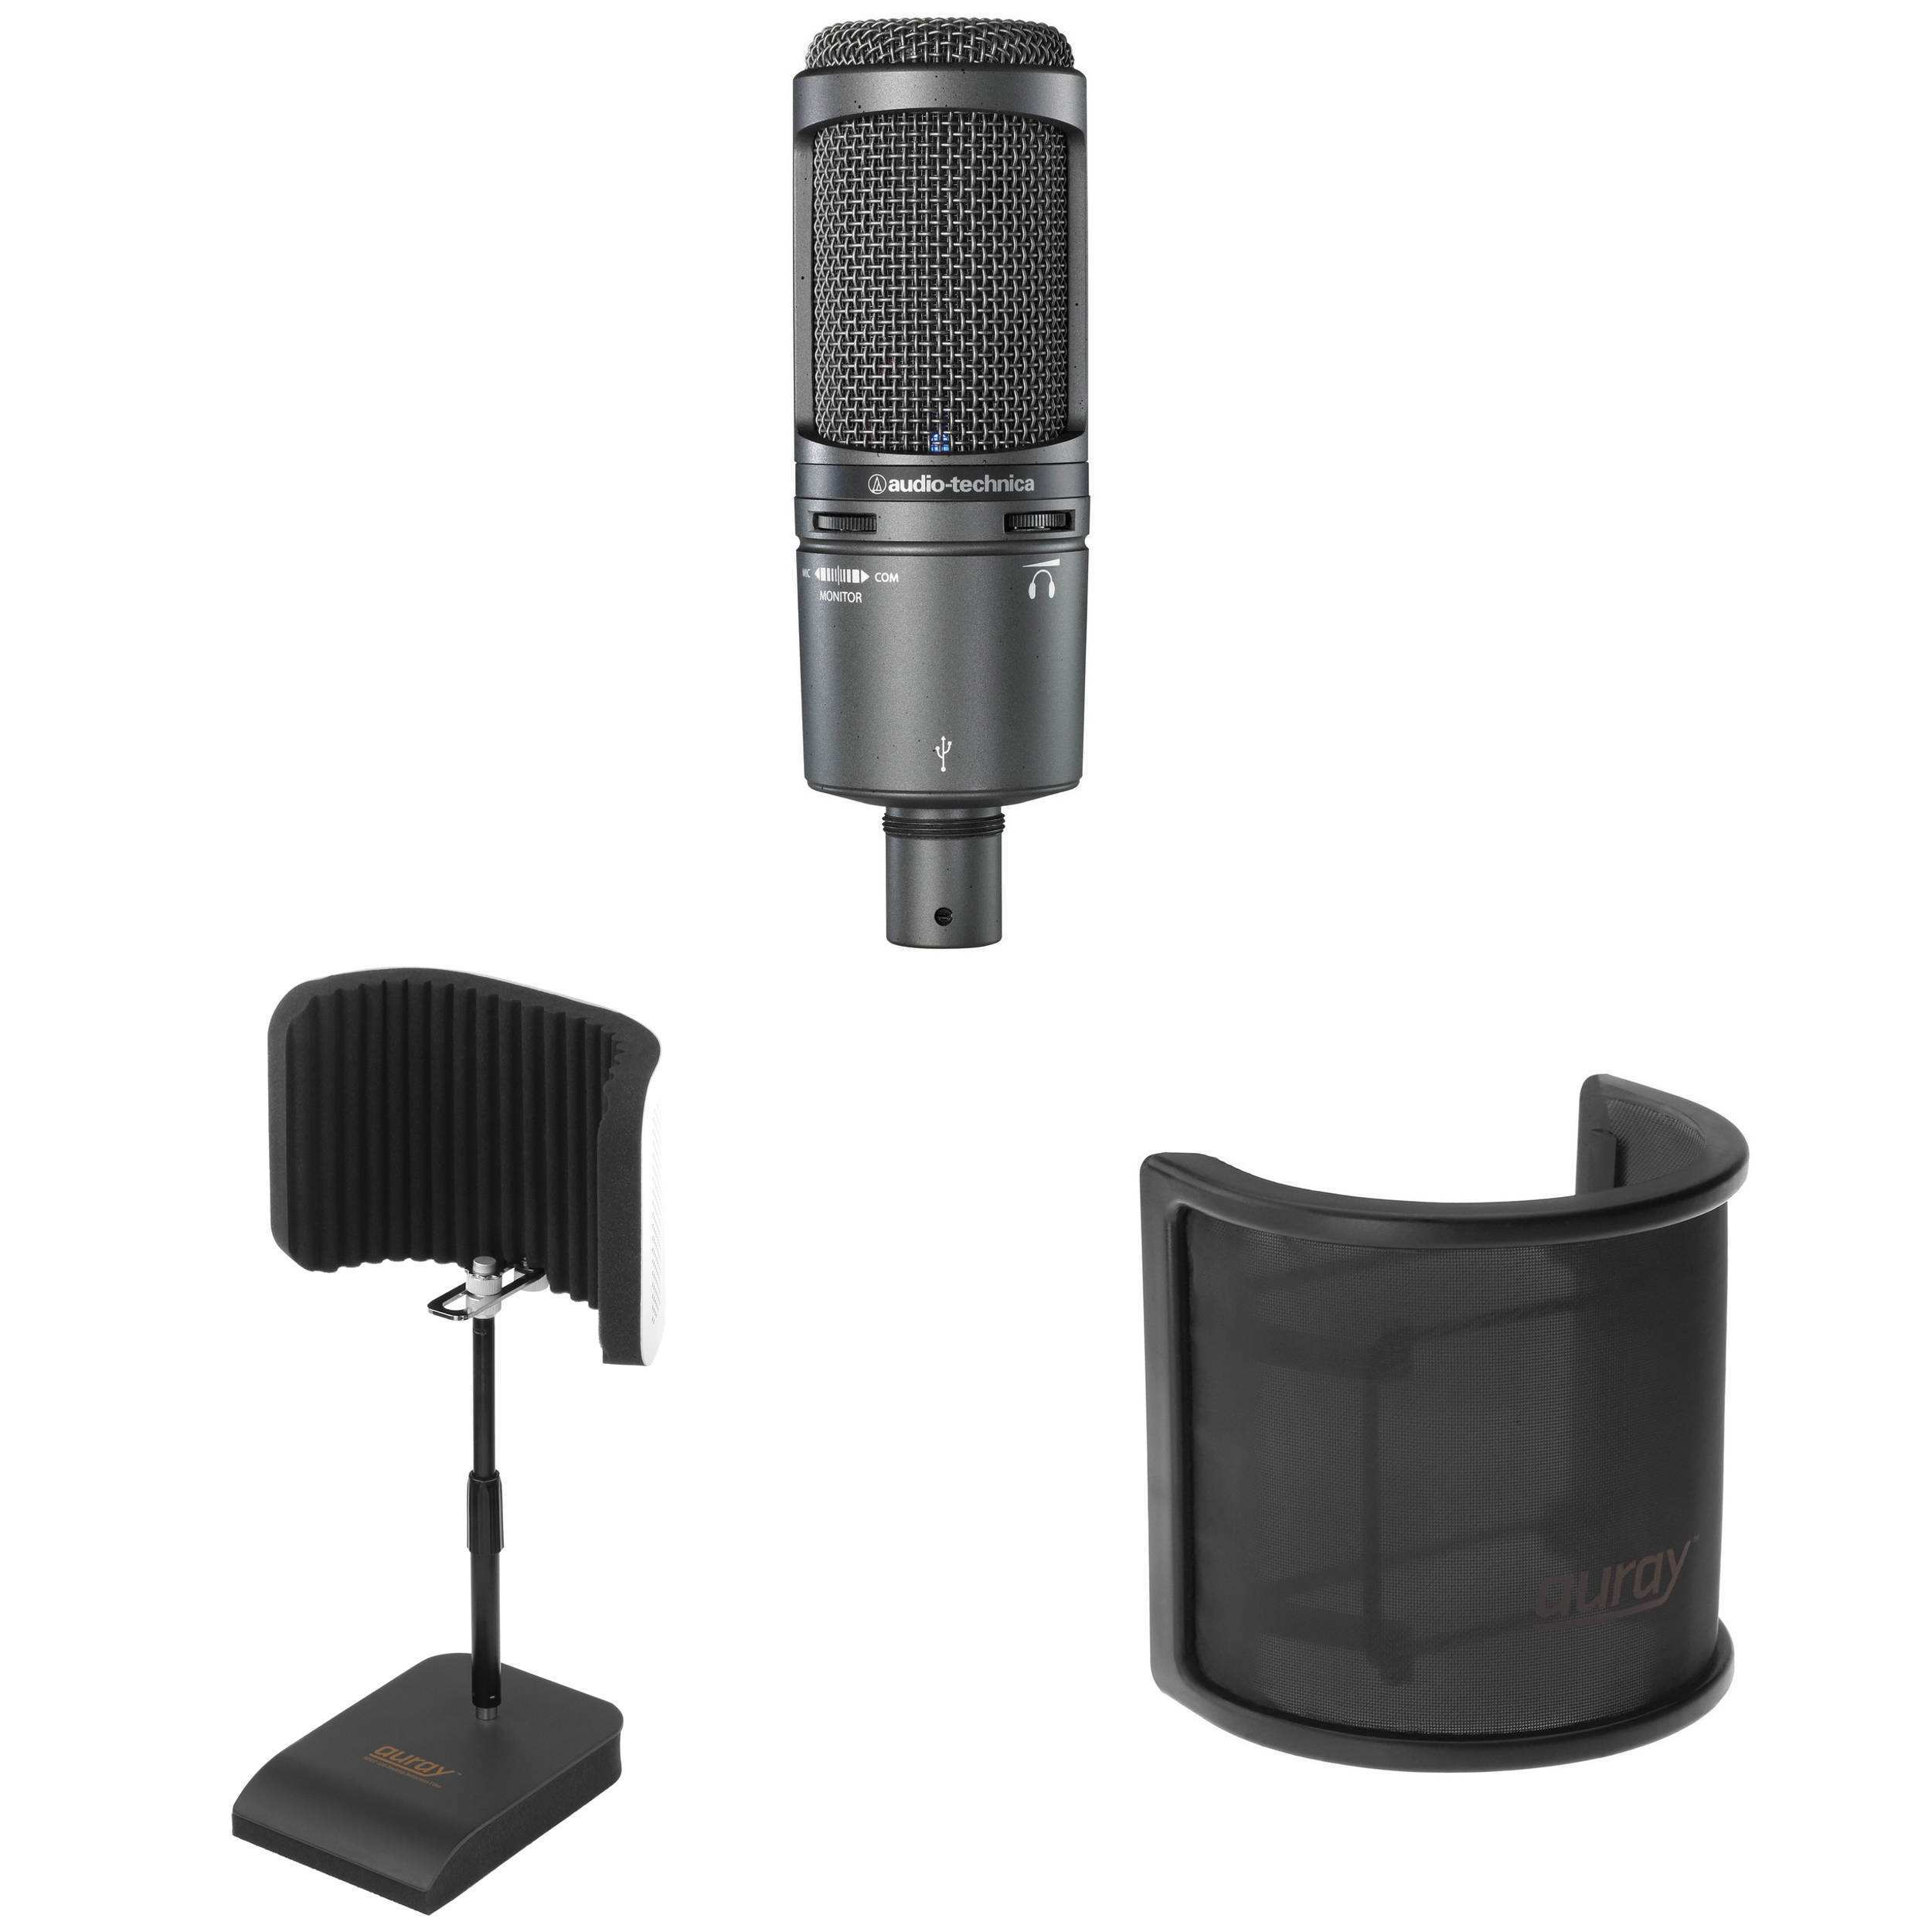 52 Great Audio Technica 2020 Price for Audio Technica 2020